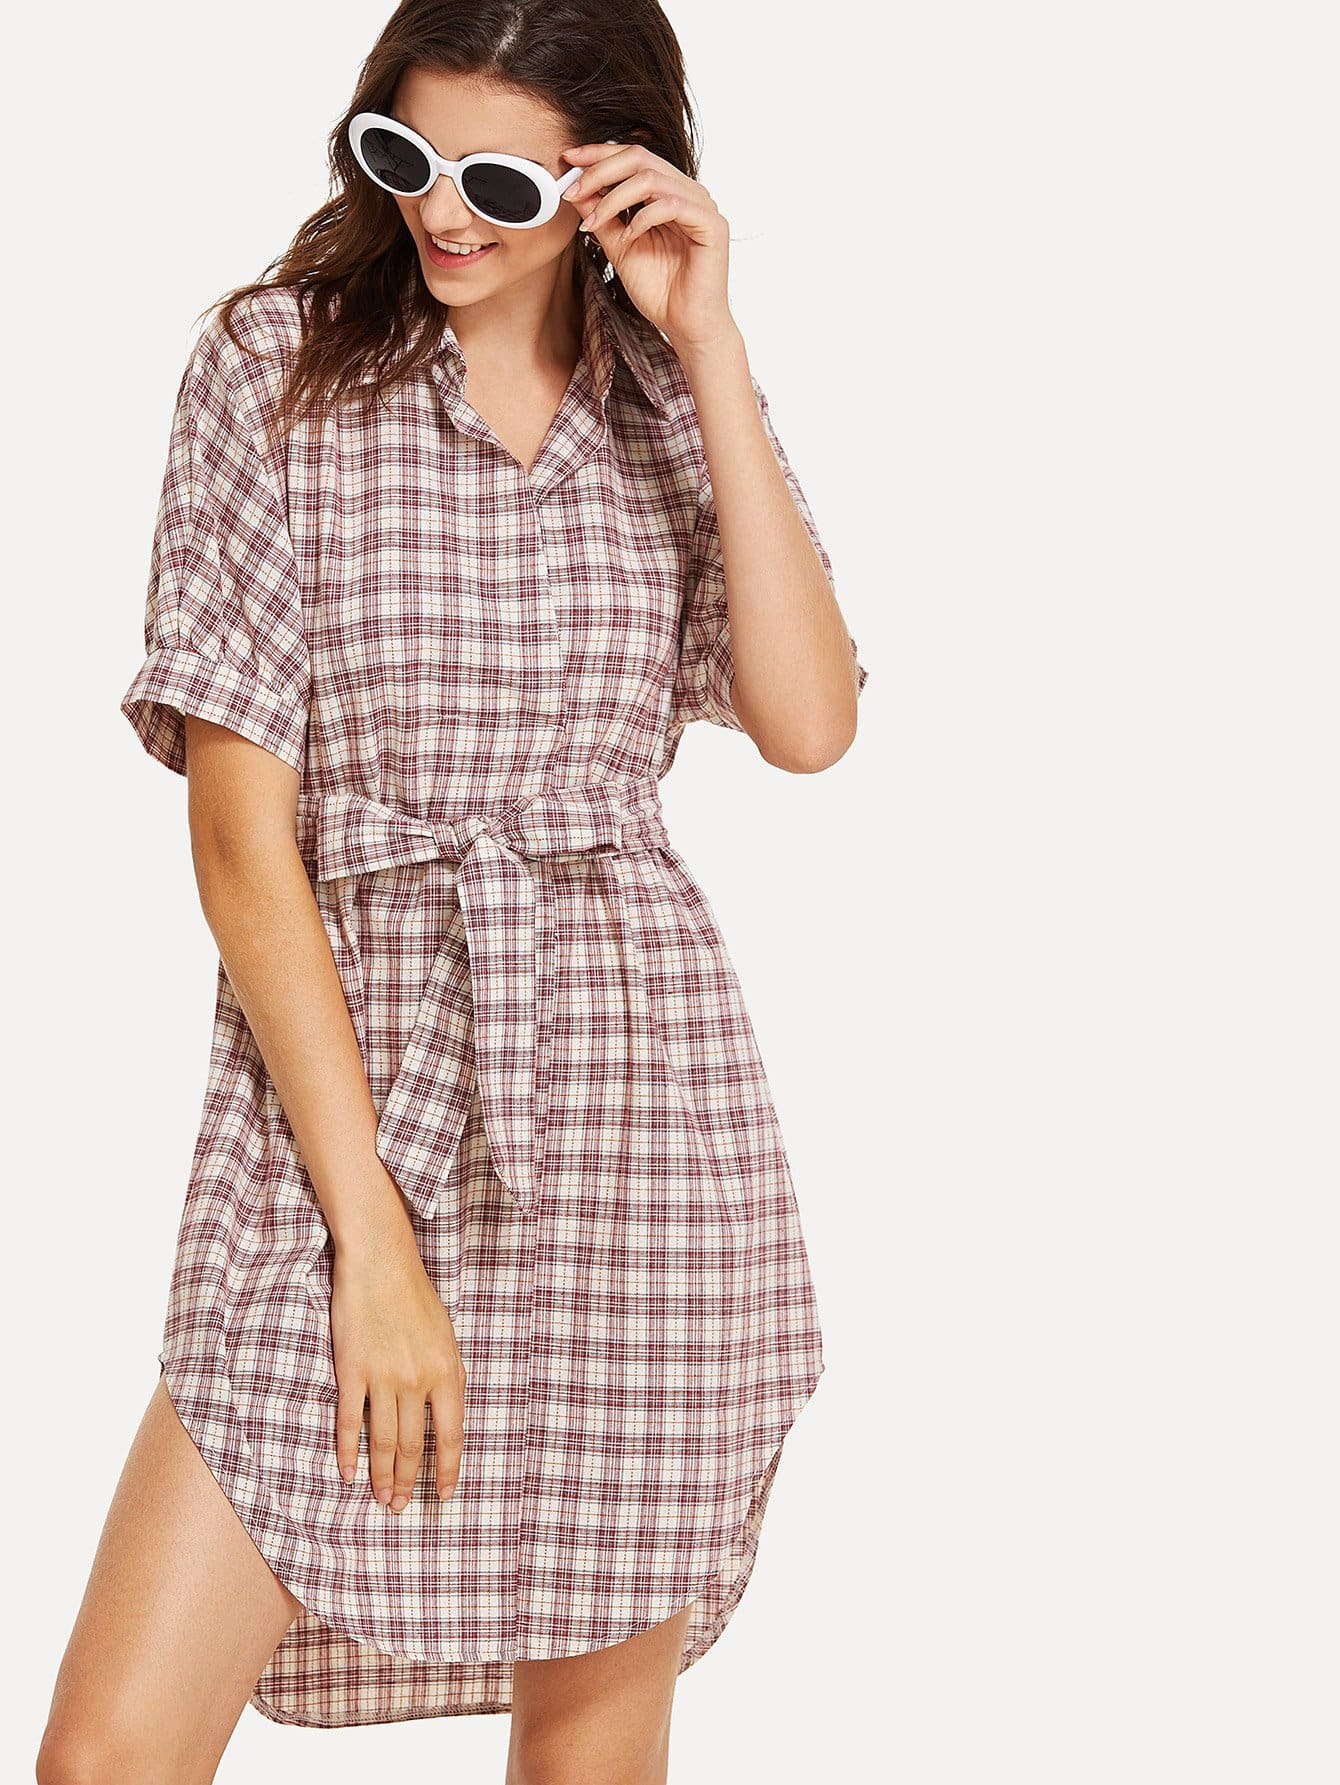 Plaid Belted Detail Shirt Dress dkny jeans w15100914126